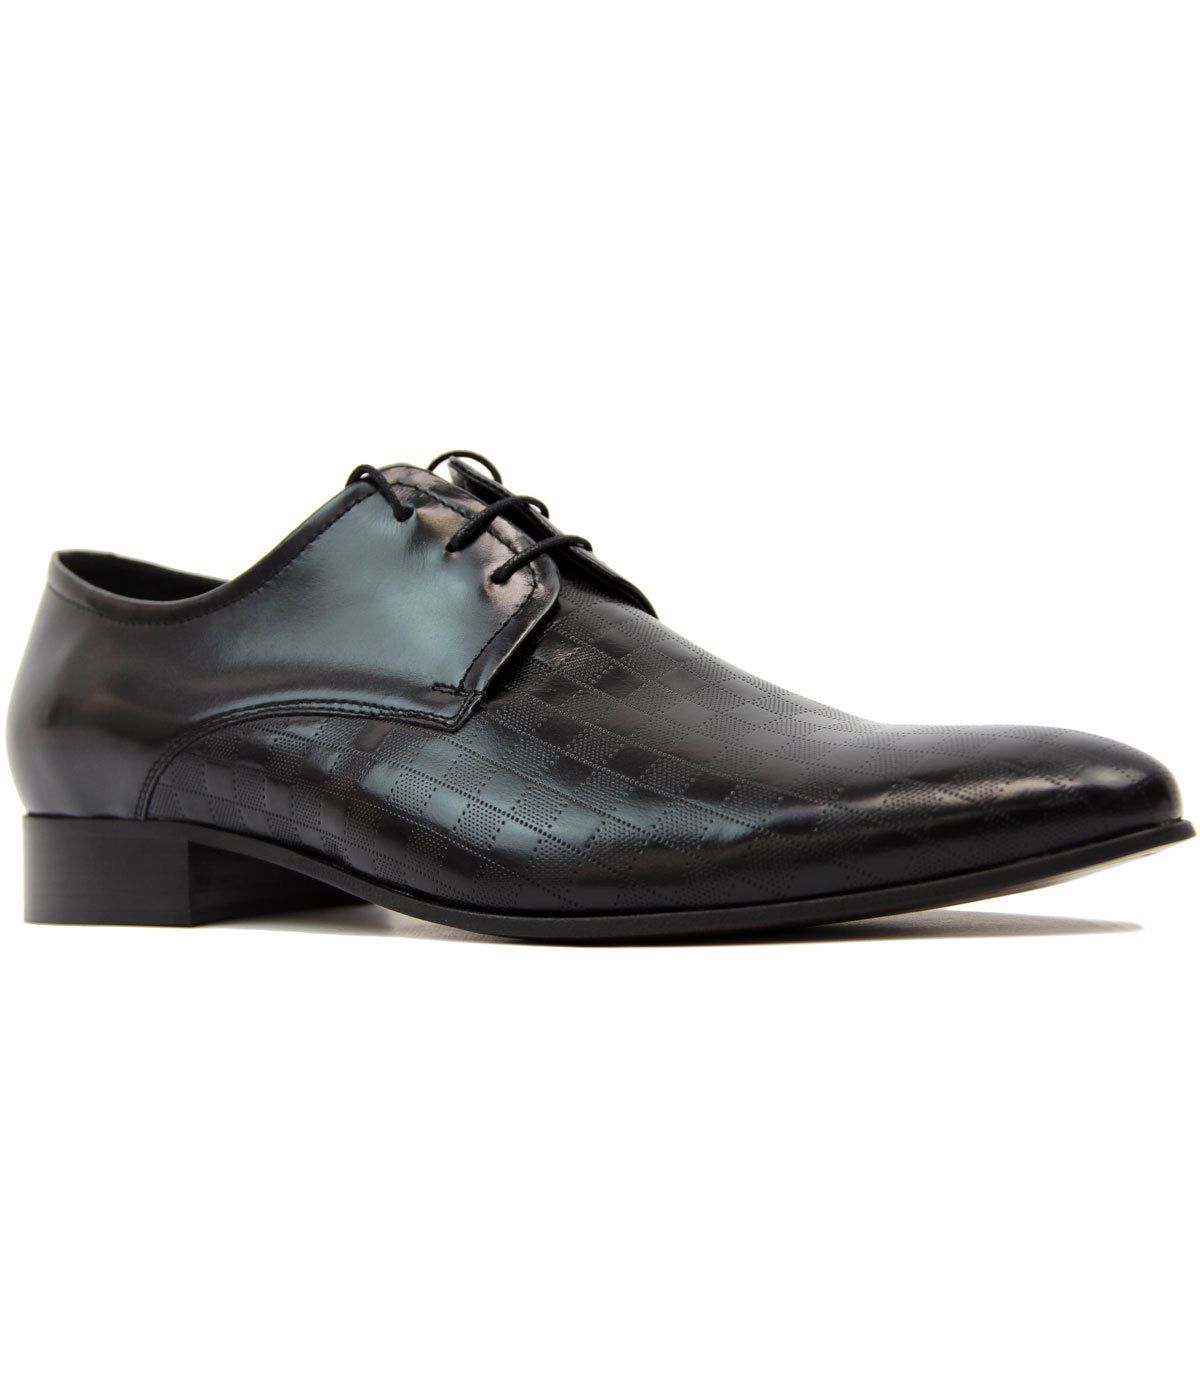 Rudy LACUZZO Mod Checkerboard Stamp Dress Shoes